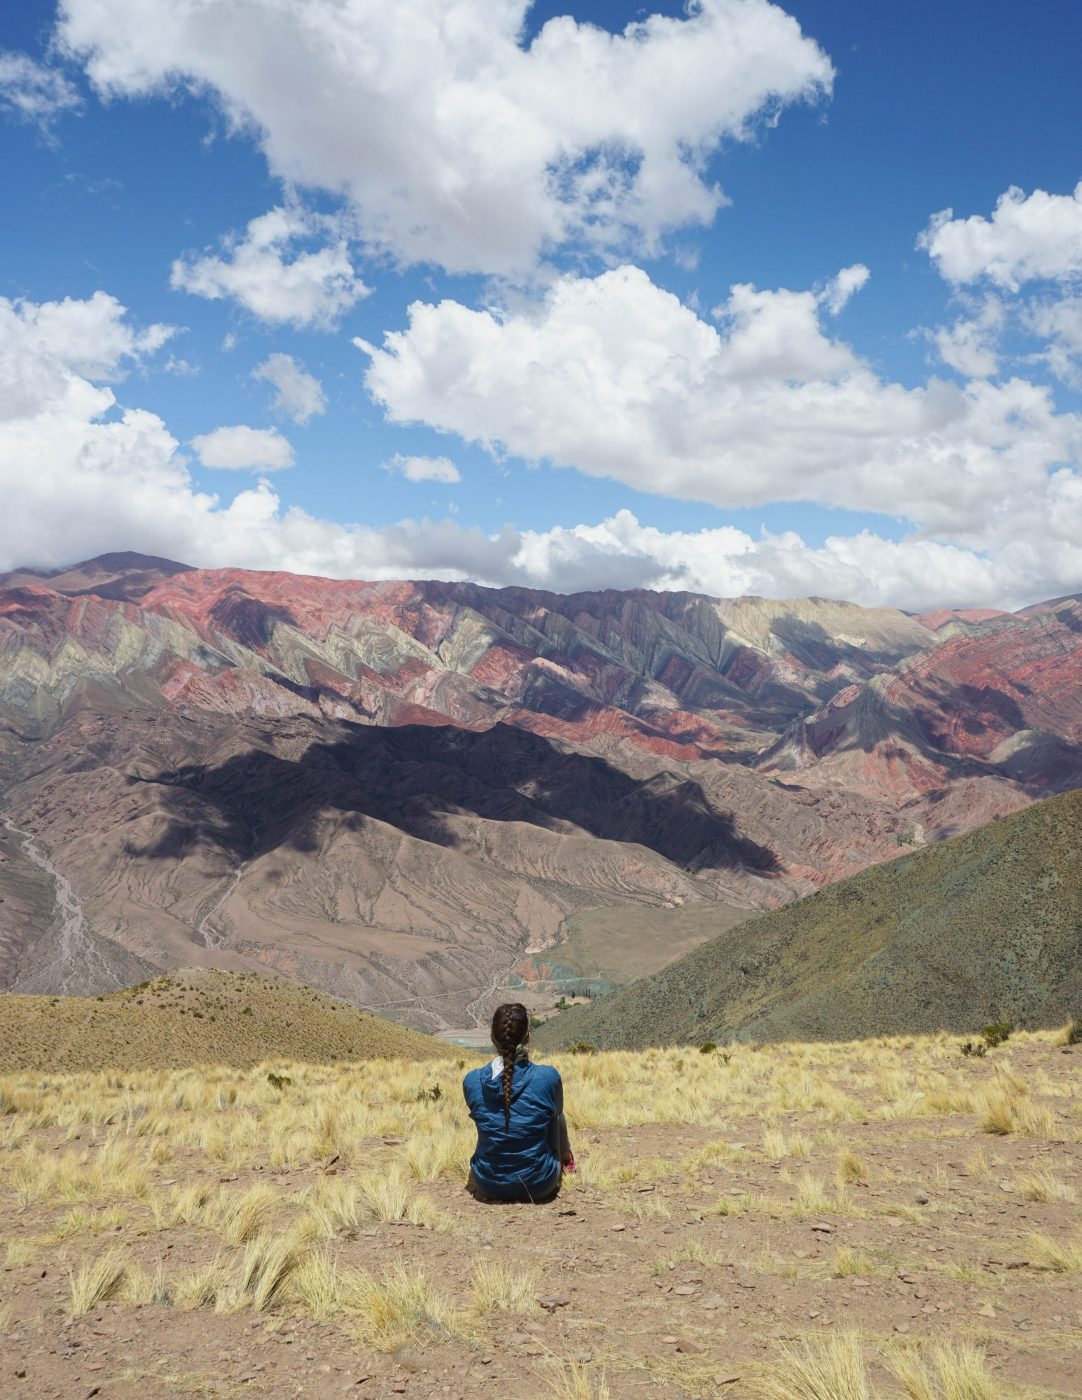 Sierra de hornocal Jujuy All you need to know to visit Jujuy Argentina